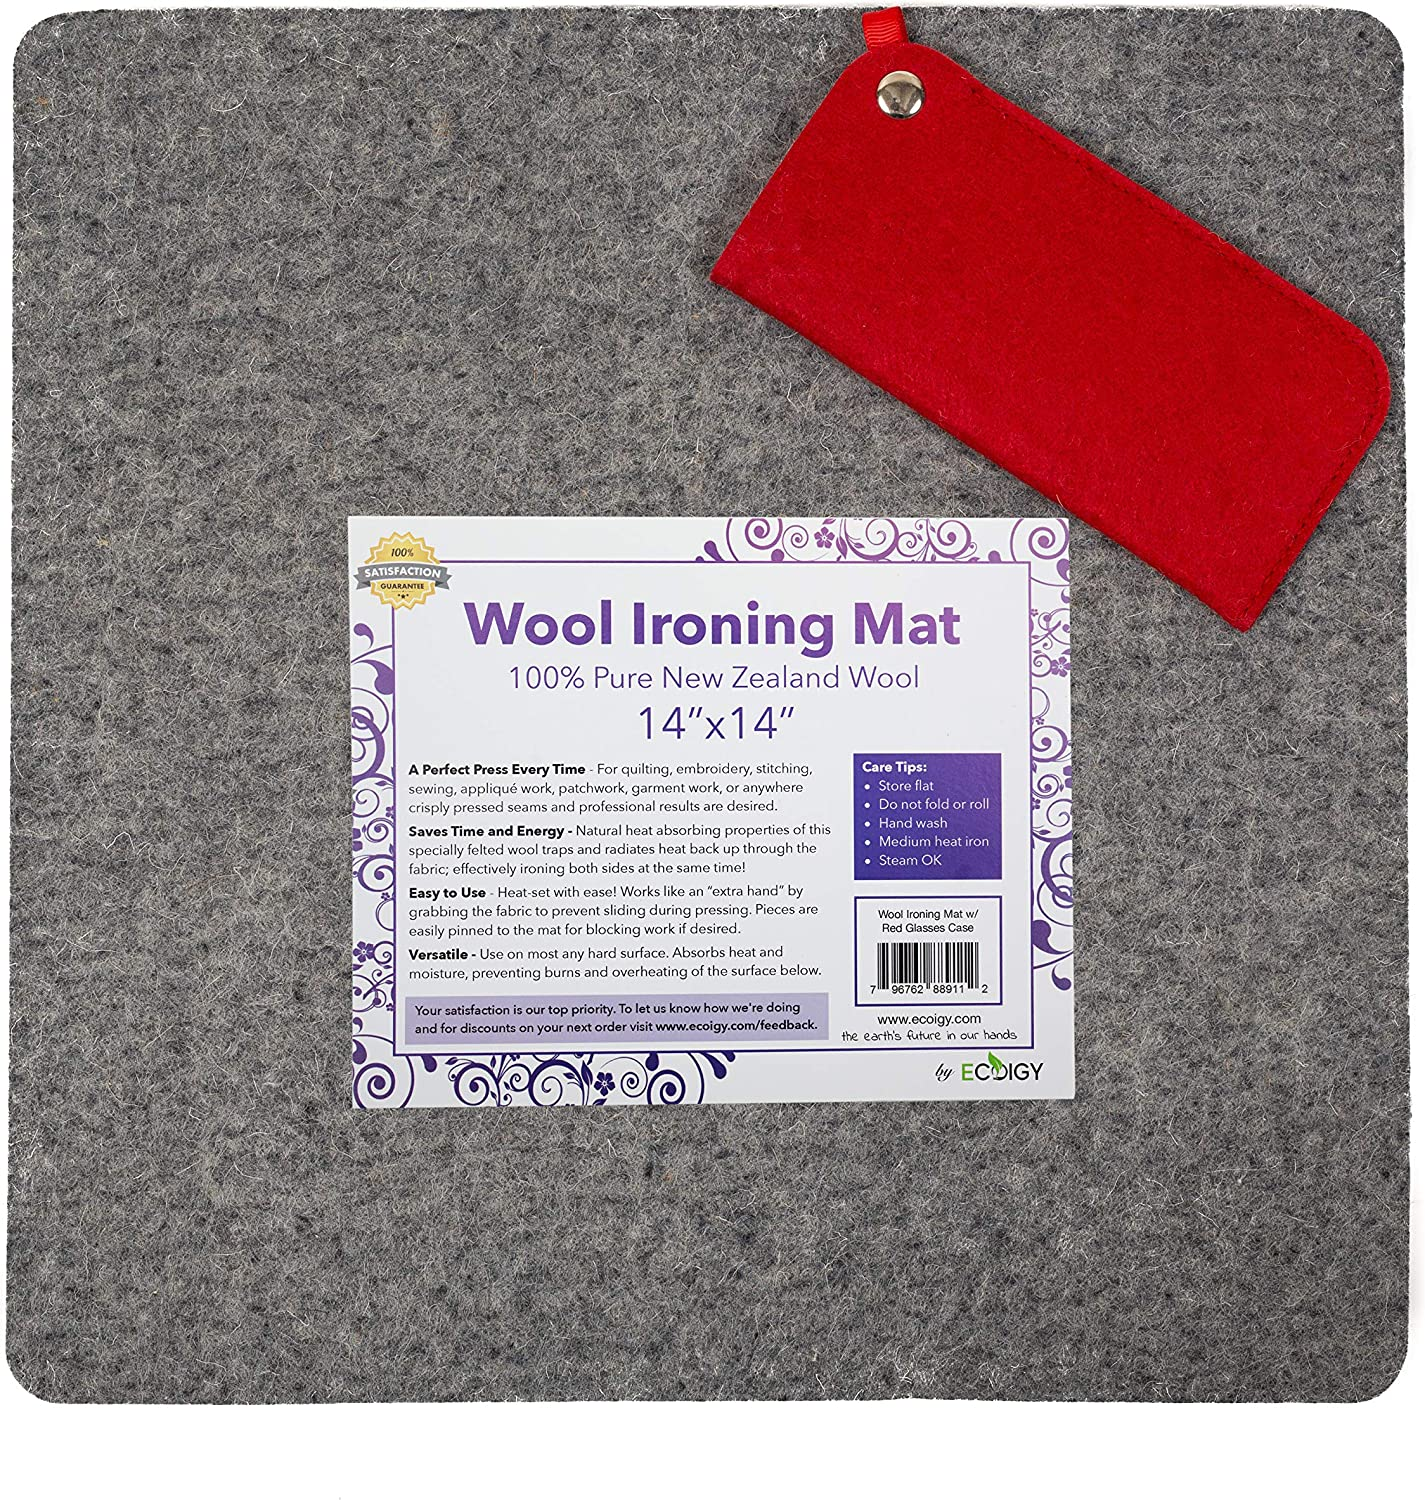 Easy Press Wooly Felted Iron Board for Quilters Perfect For Quilting /& Sewing Projects Handmade Item Wool Ironing Mat Wool Pressing Mat Quilting Ironing Pad